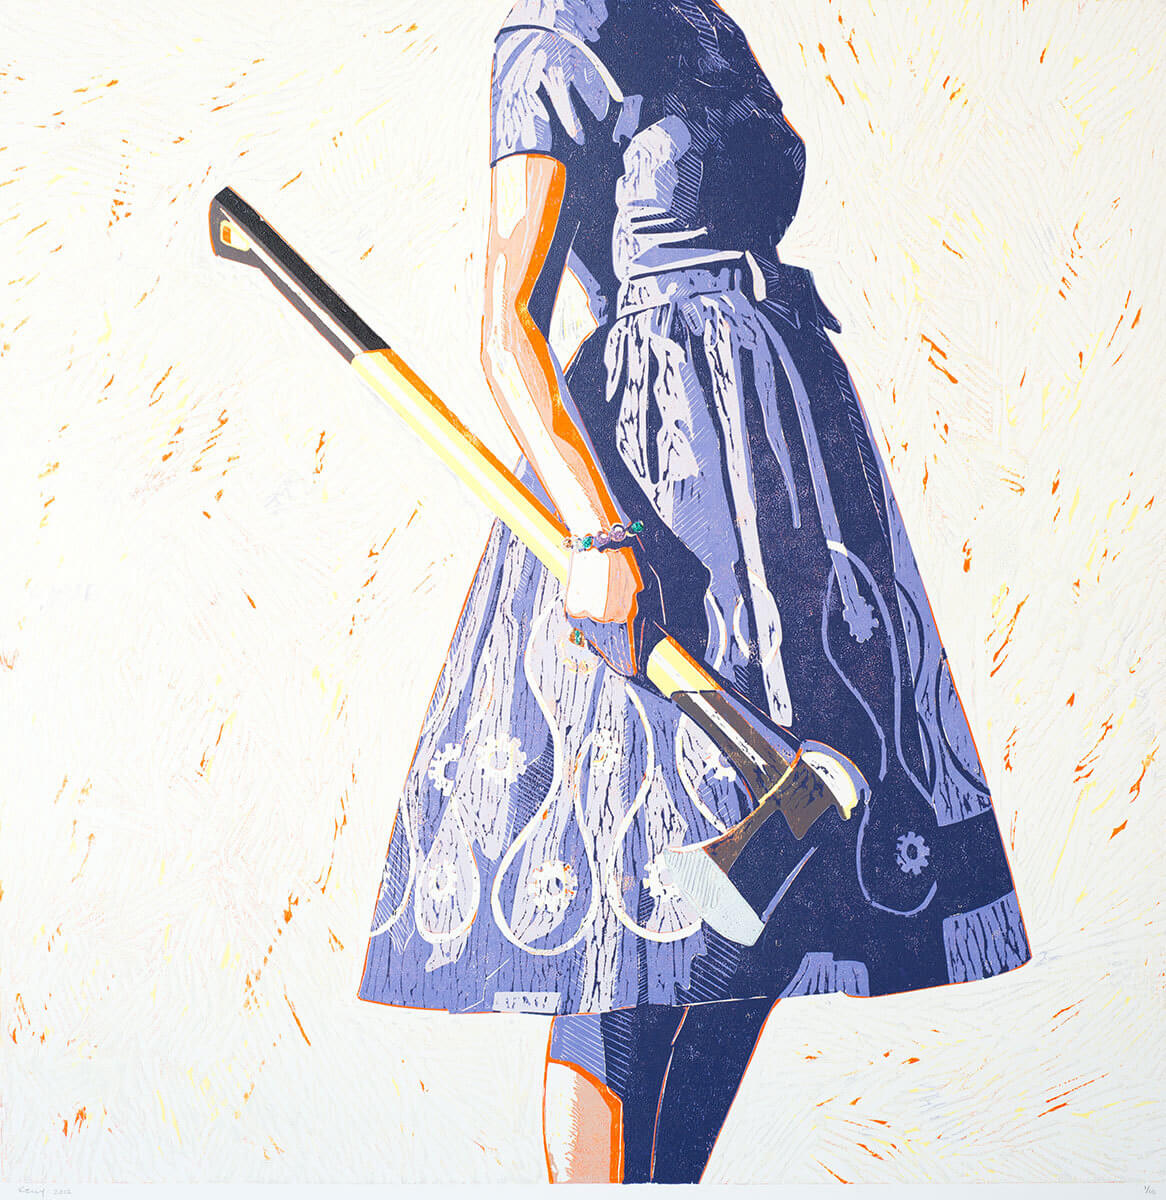 Kelly Remtsen, Splitting Hairs, 2012